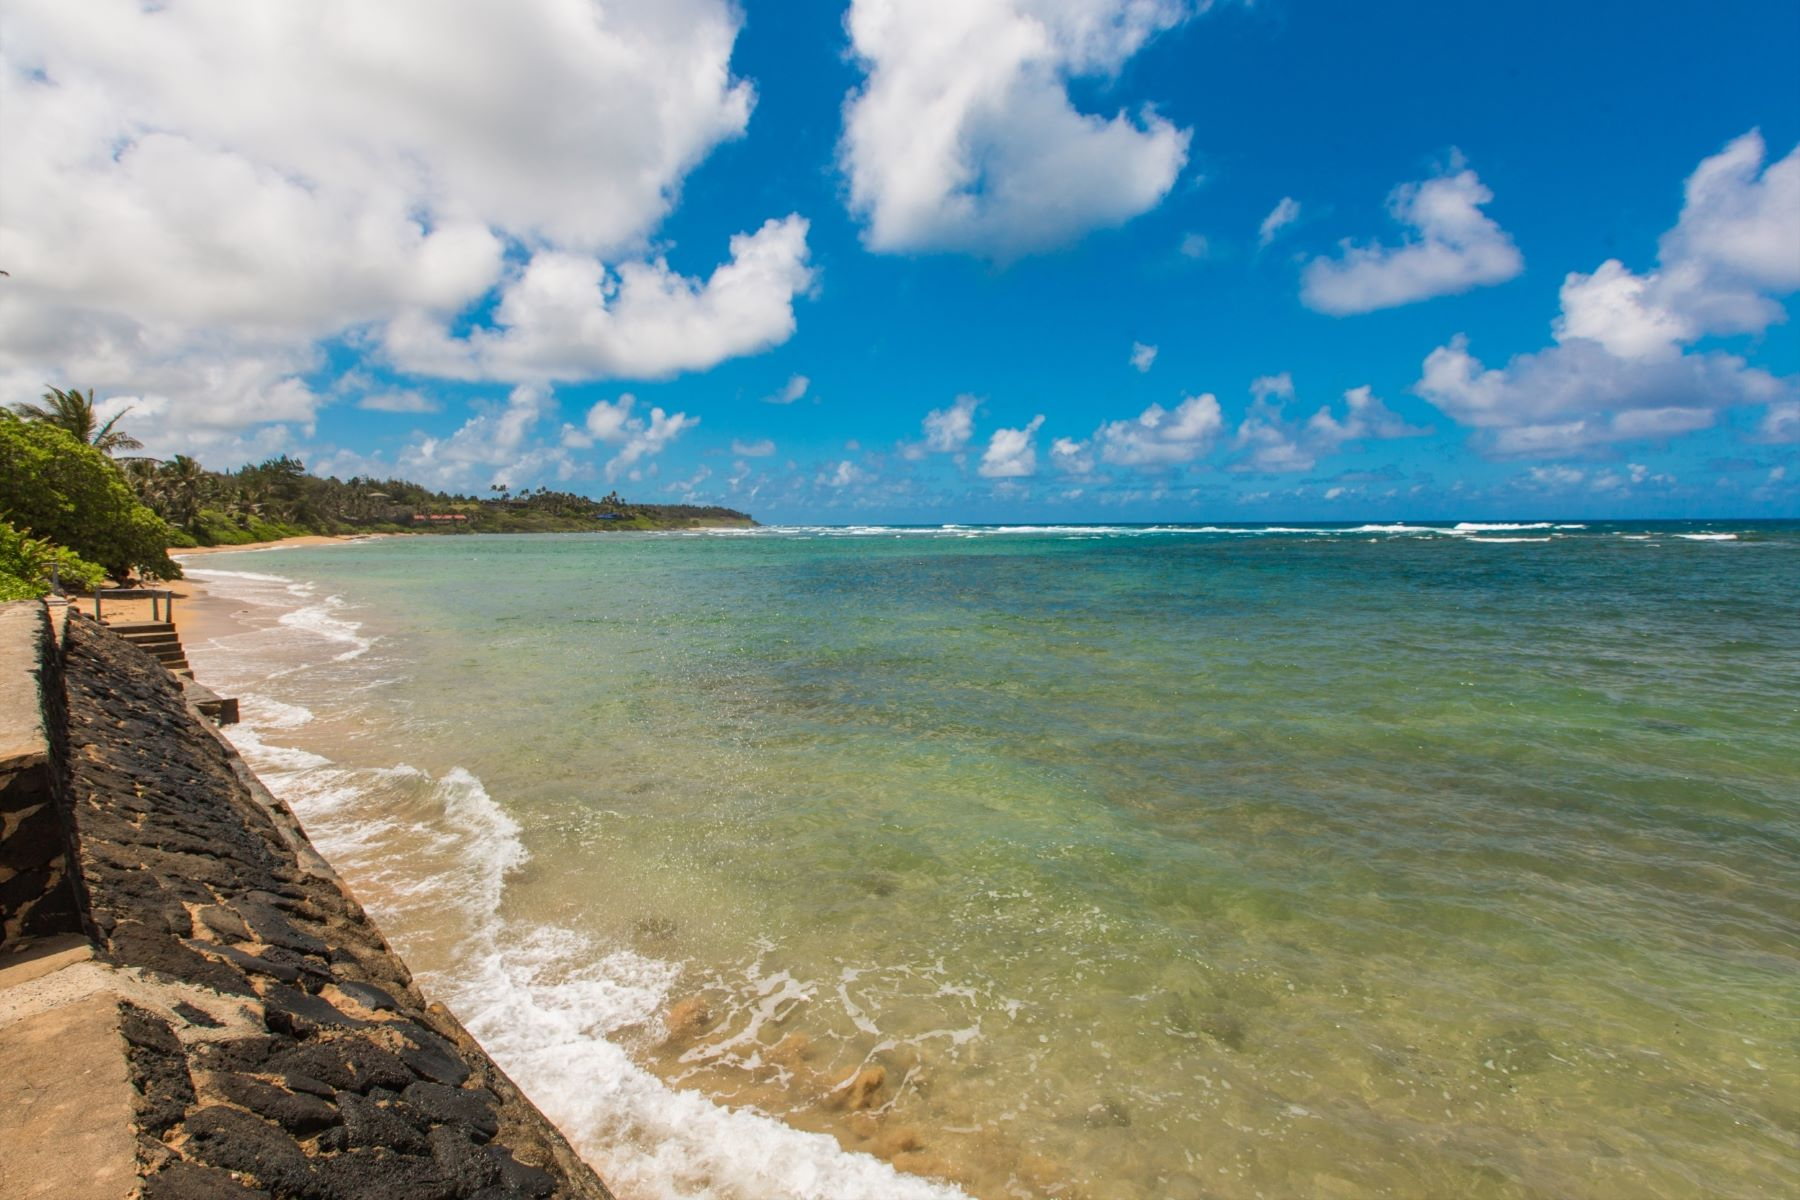 Single Family Home for Sale at Amazing Ocean Views in Sunny Anahola 4920 Aliomanu Road Anahola, Hawaii 96703 United States